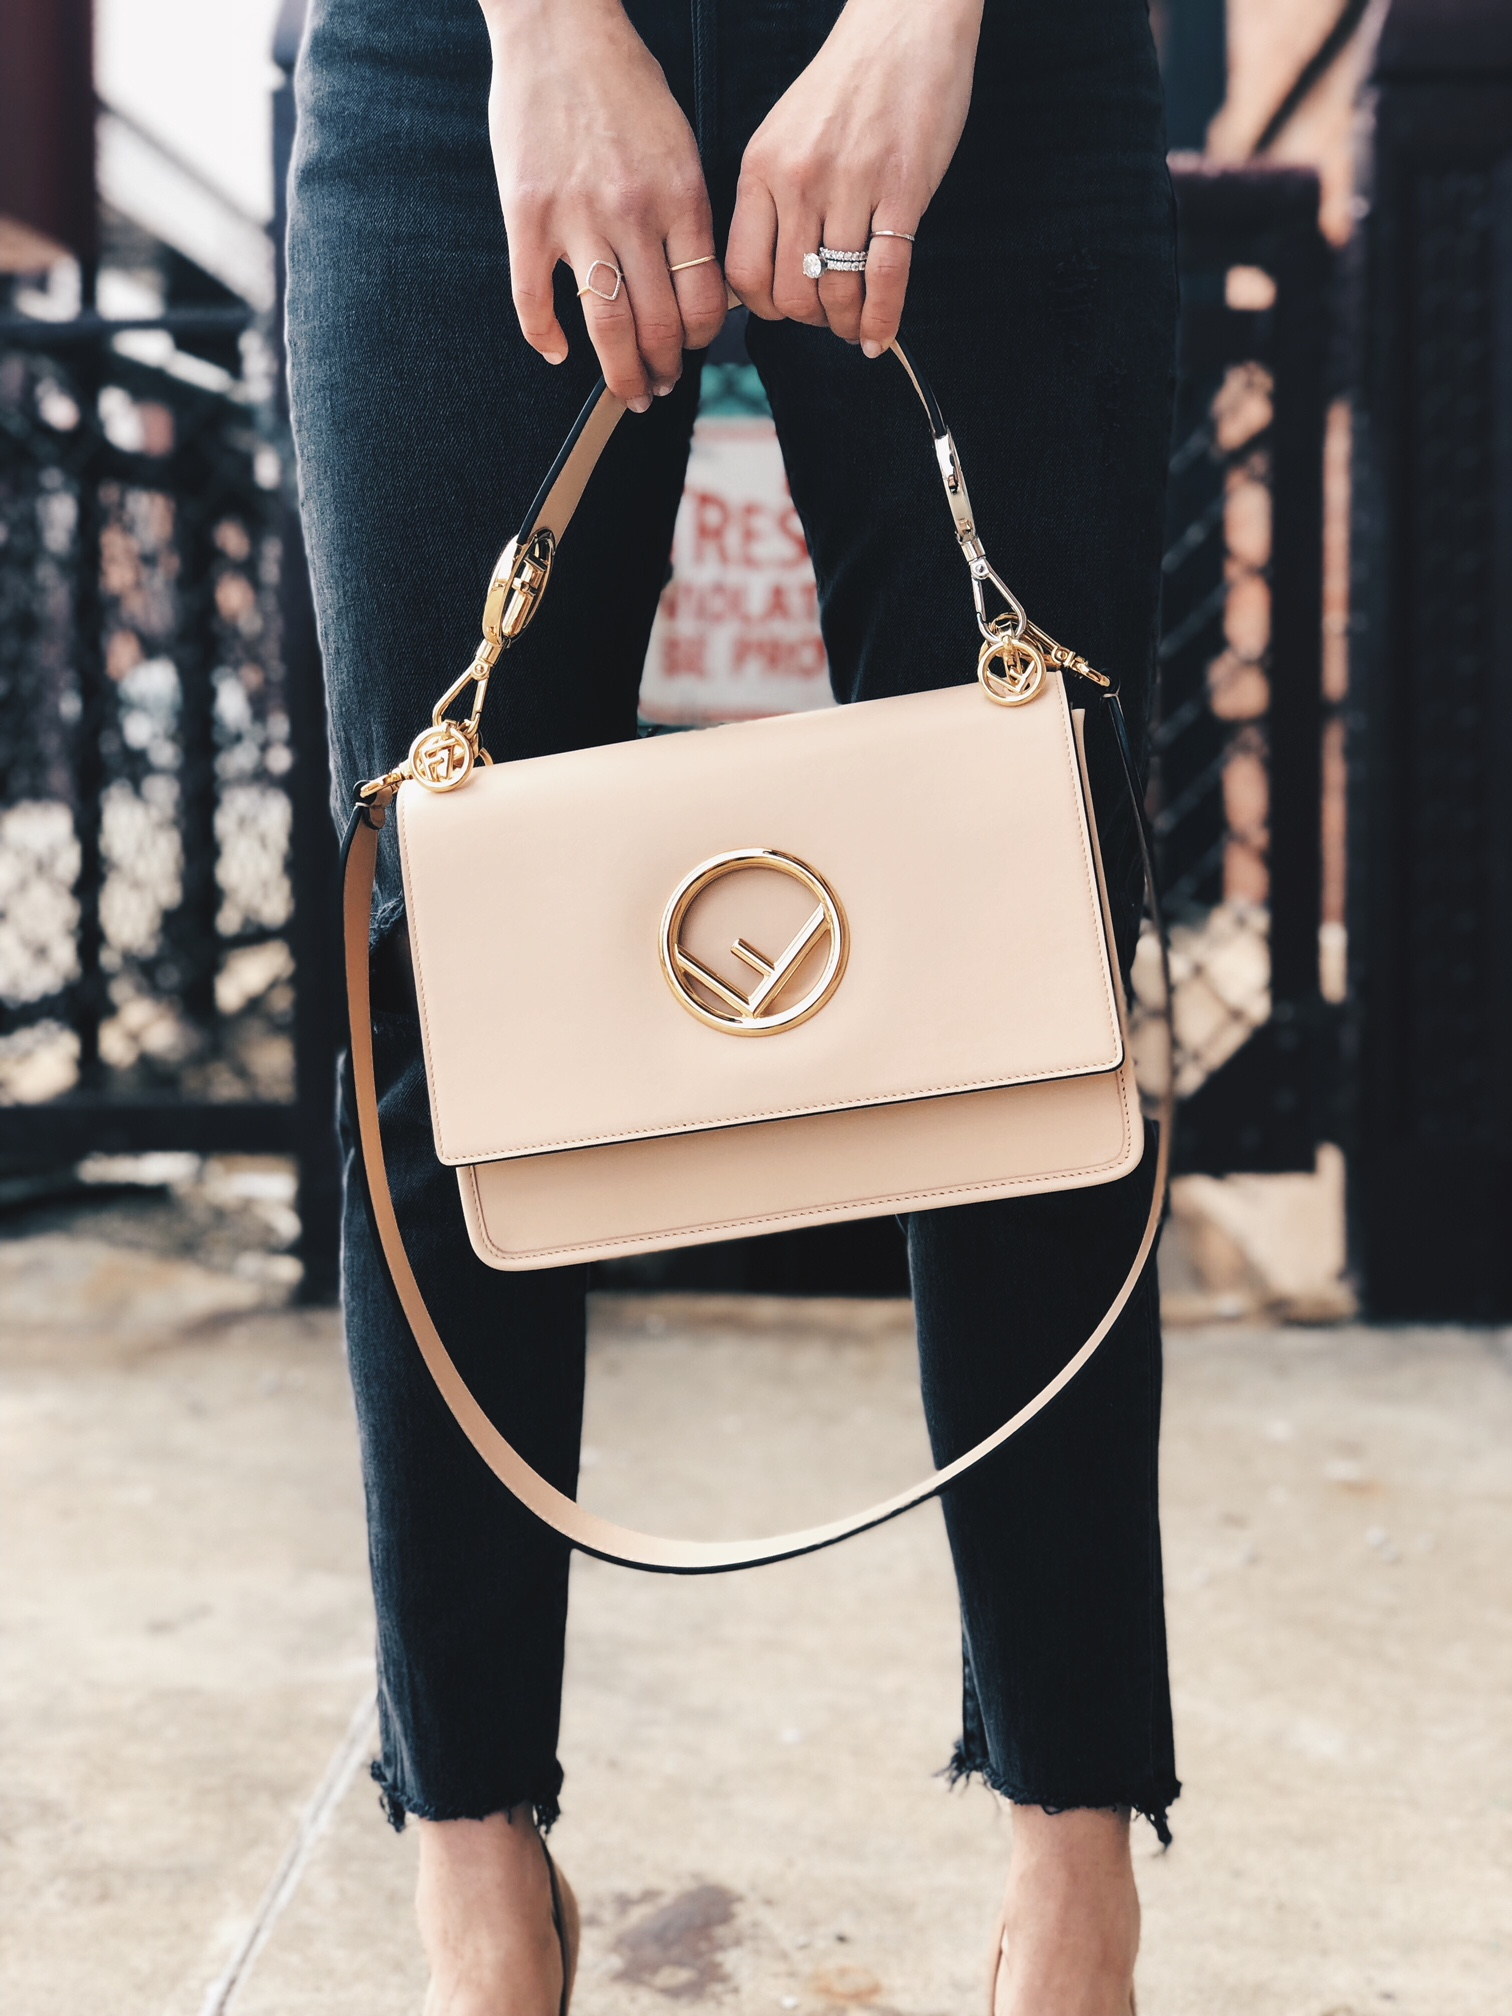 a1bcc36734f7 How to buy a preowned designer handbag - But First Koffee